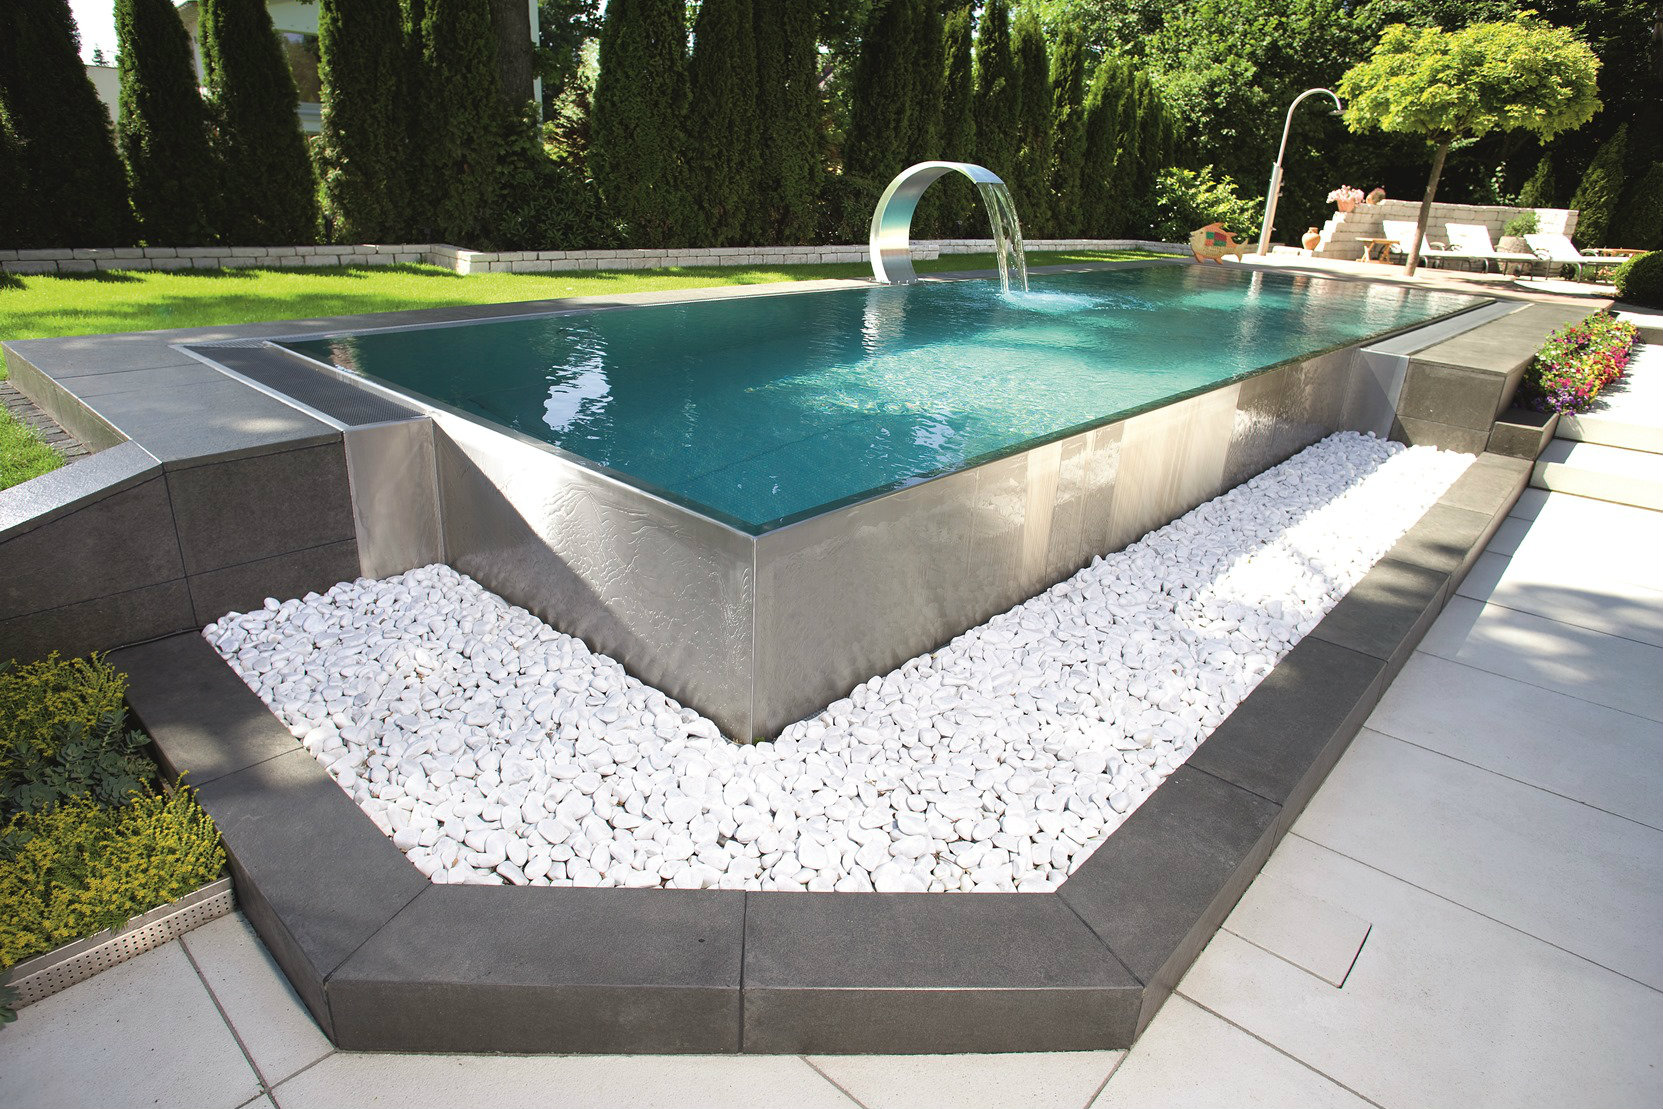 european stainless steel pool manufacturer berndorf enters u s market pool spa news. Black Bedroom Furniture Sets. Home Design Ideas